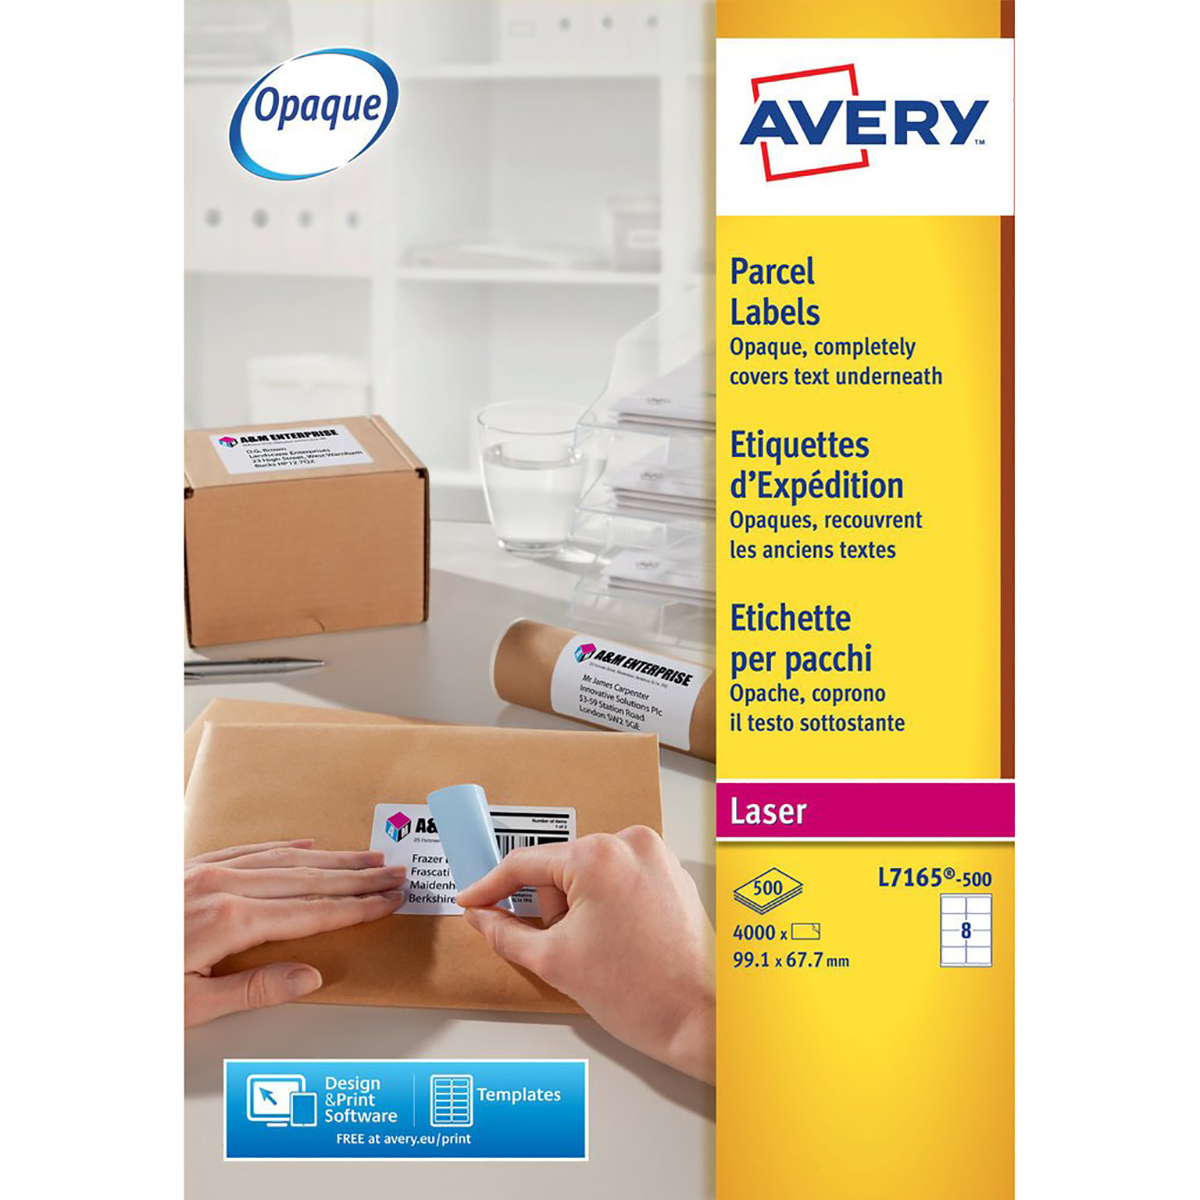 Avery L7165-500 Parcel Labels 500 sheets - 8 Labels per Sheet